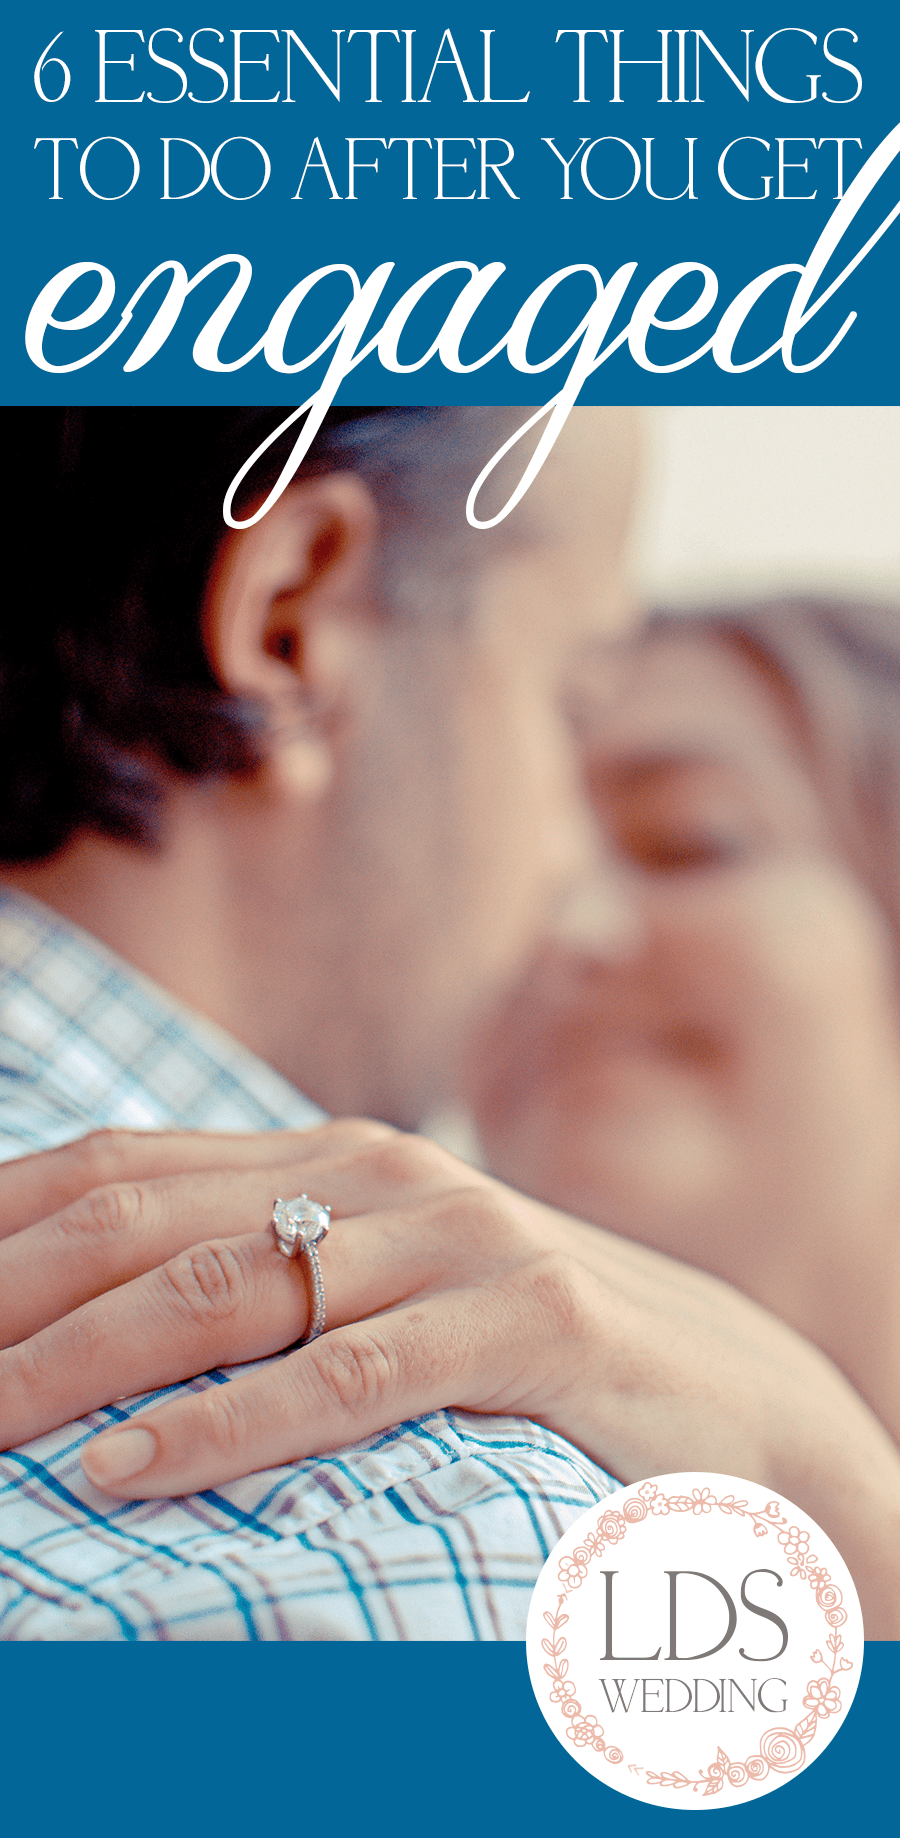 6 Essentials Things to Do After You Get Engaged